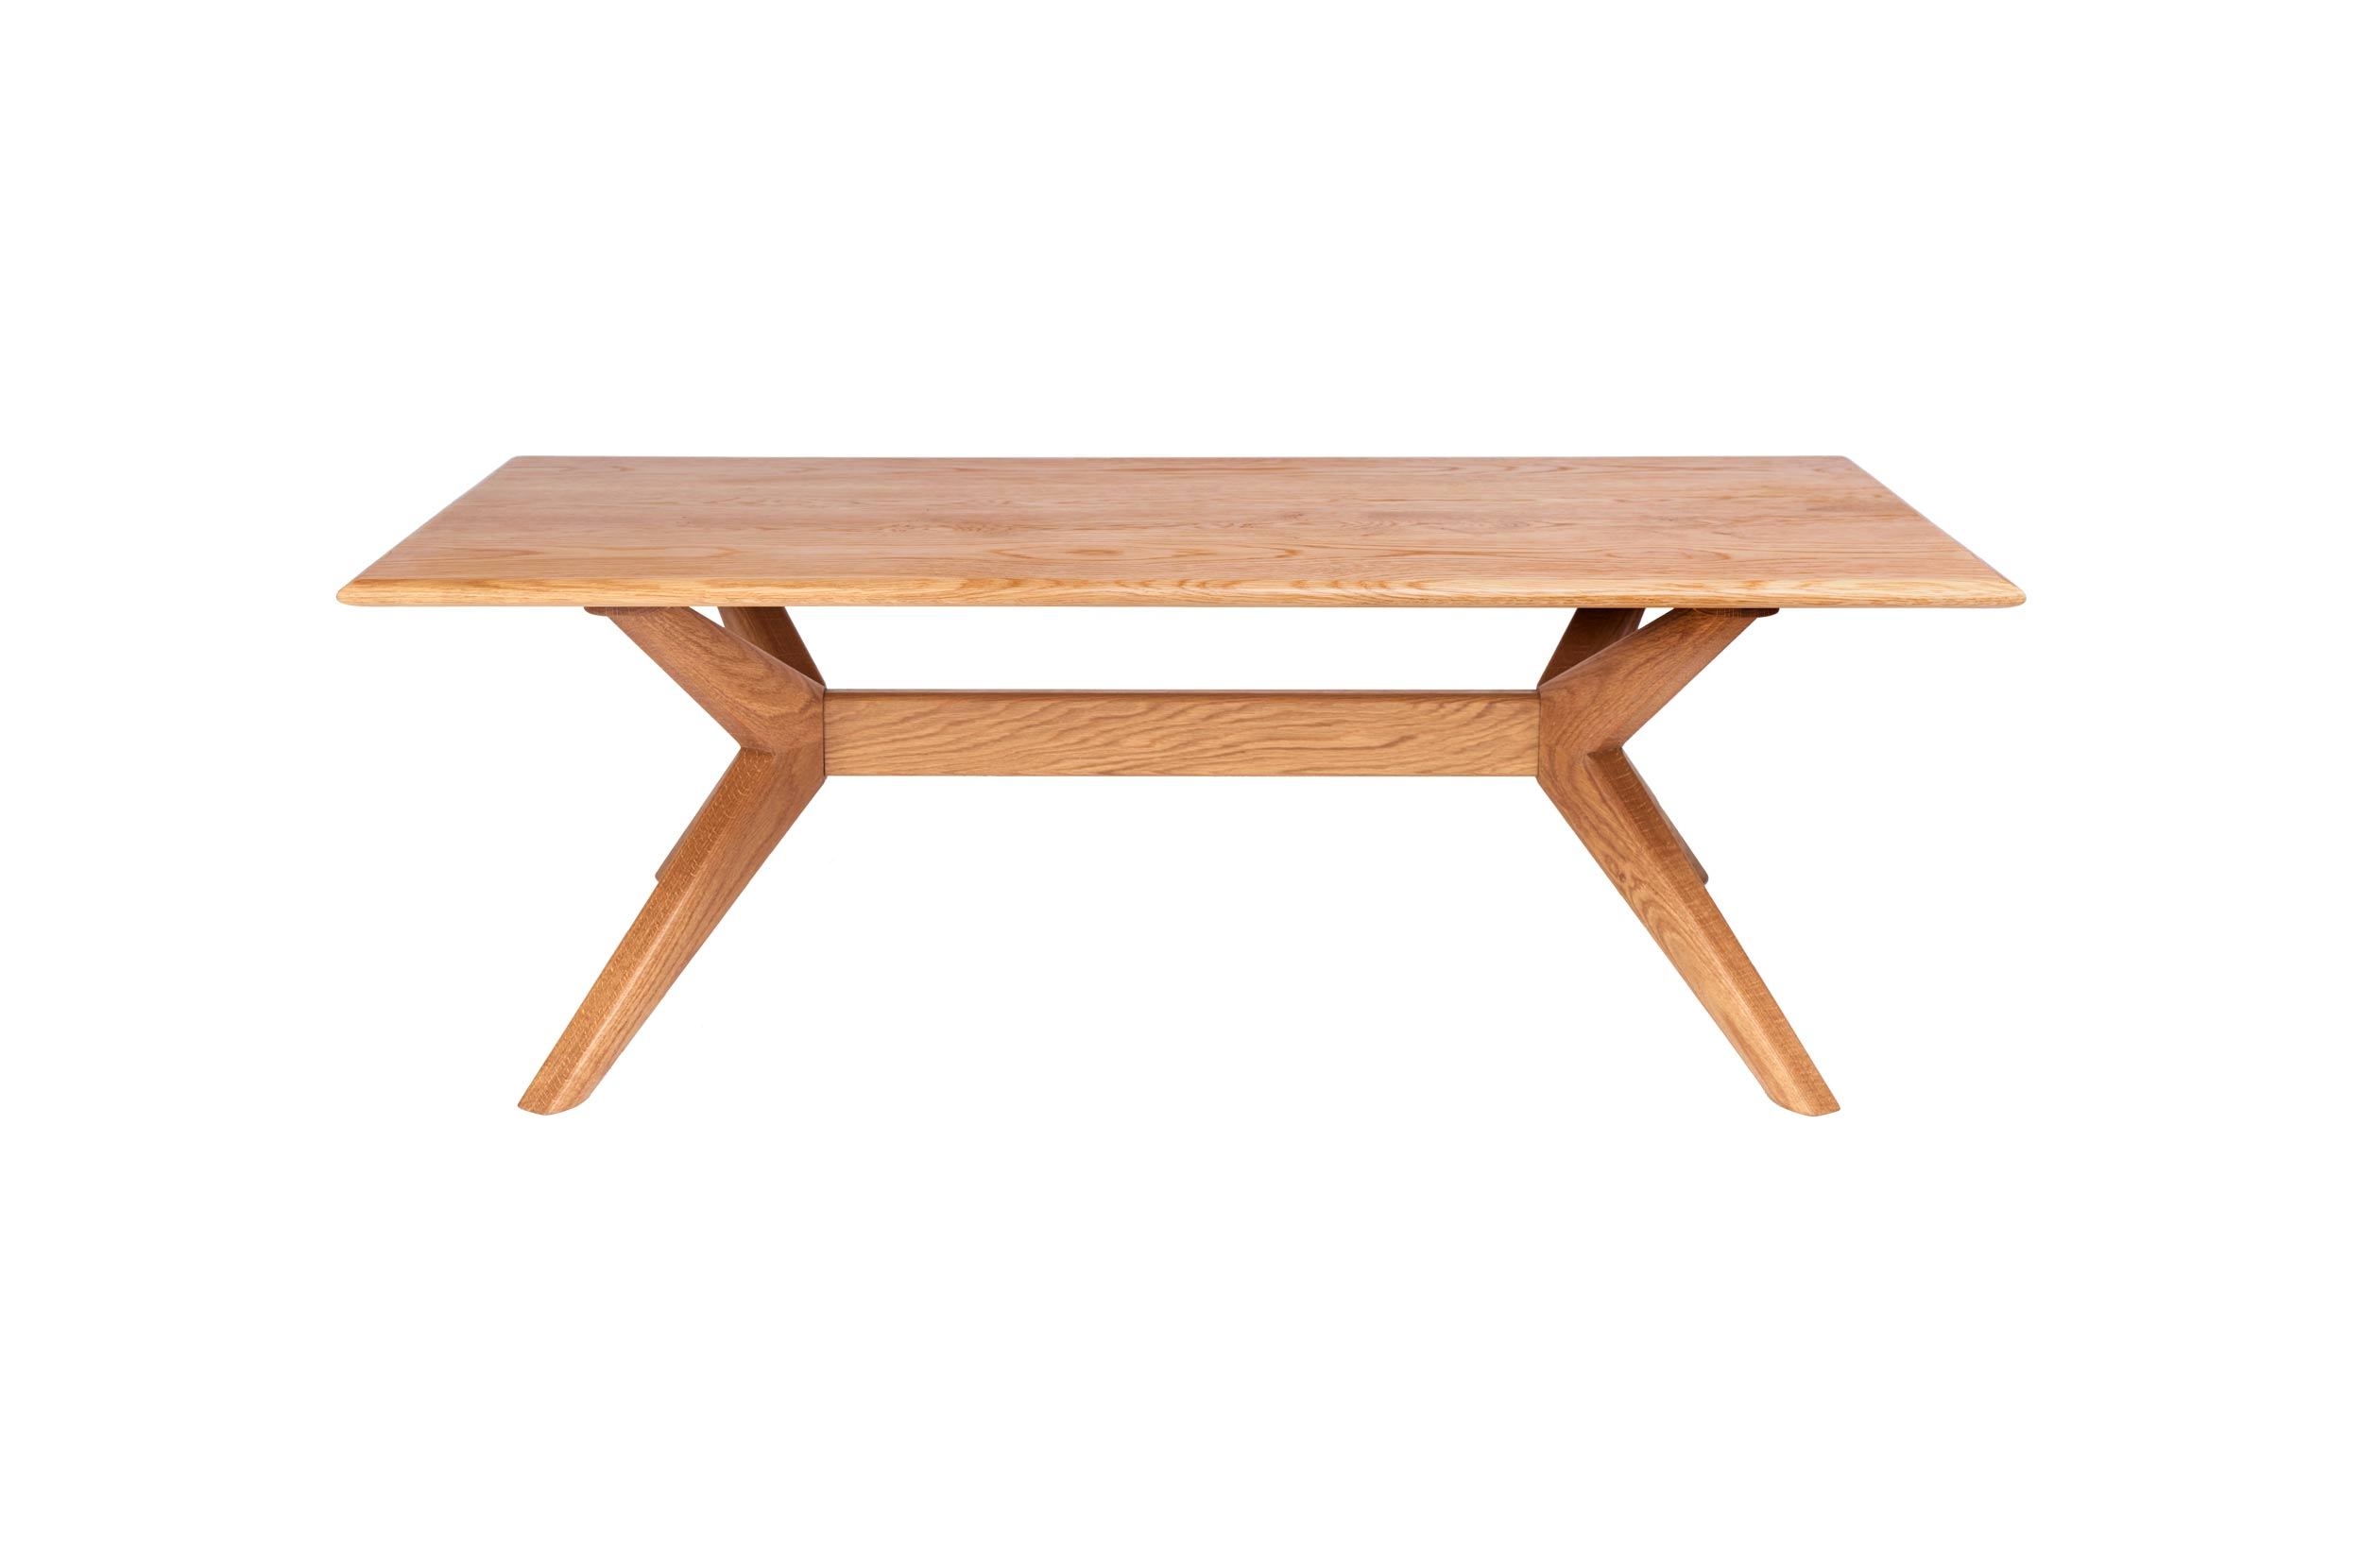 Chantry rectangular coffee table in oak by Charlie Caffyn modern british furniture designer maker